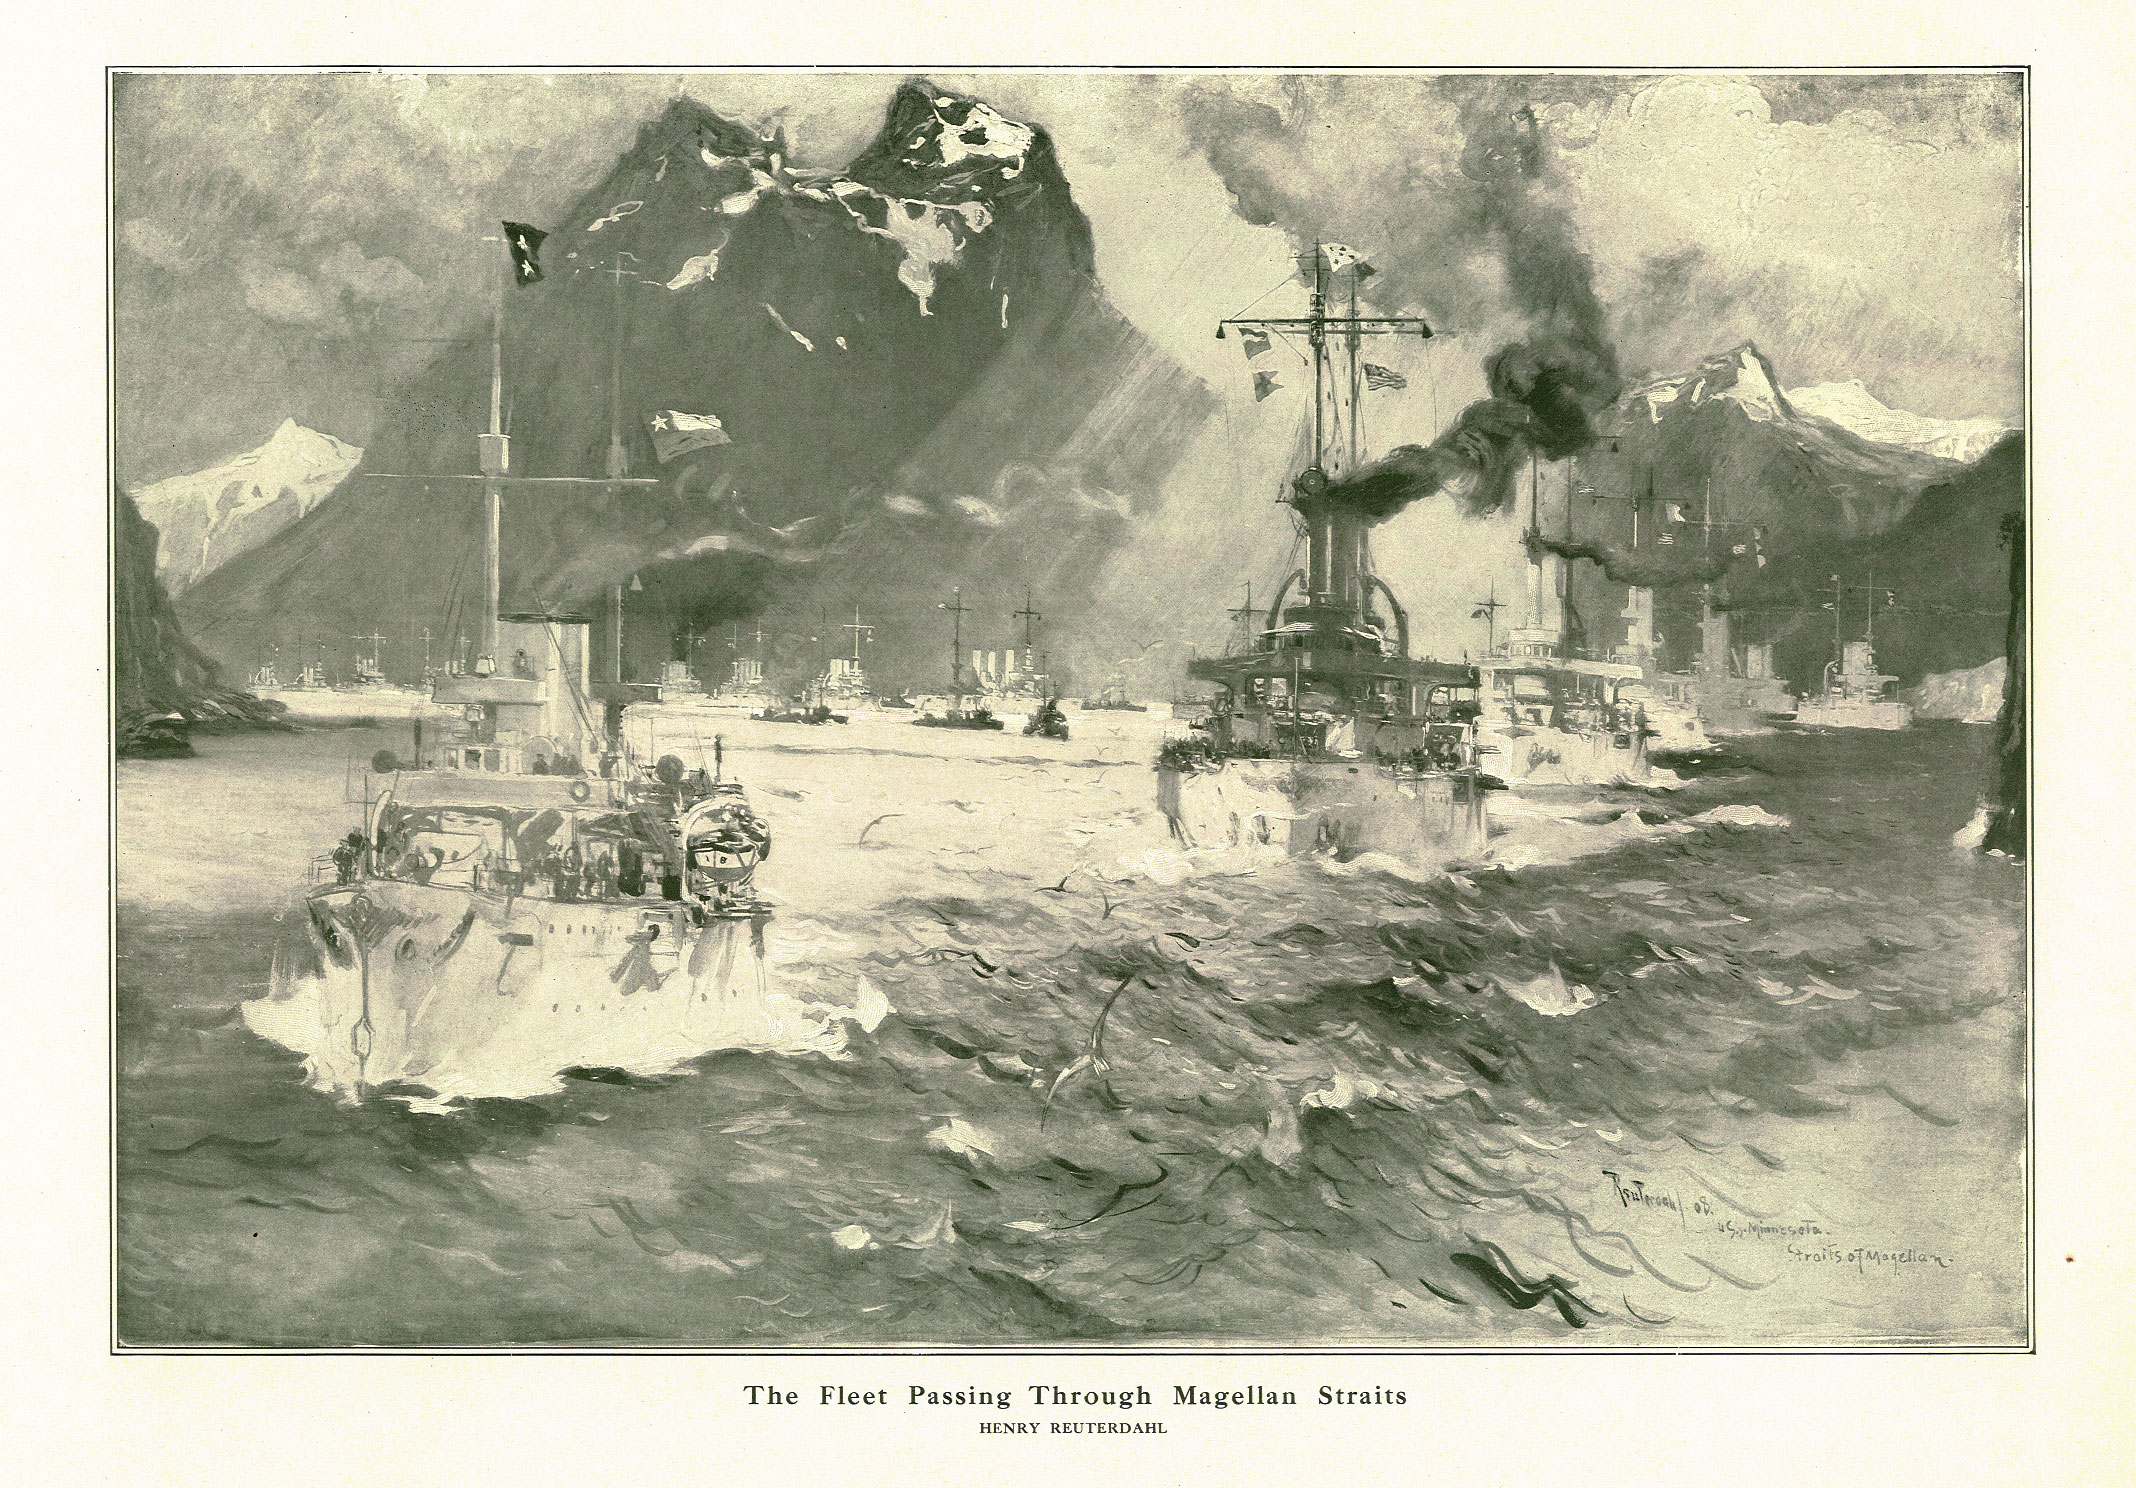 Reuterdahl_Fleet_Passing_Through_Magellan_Straits